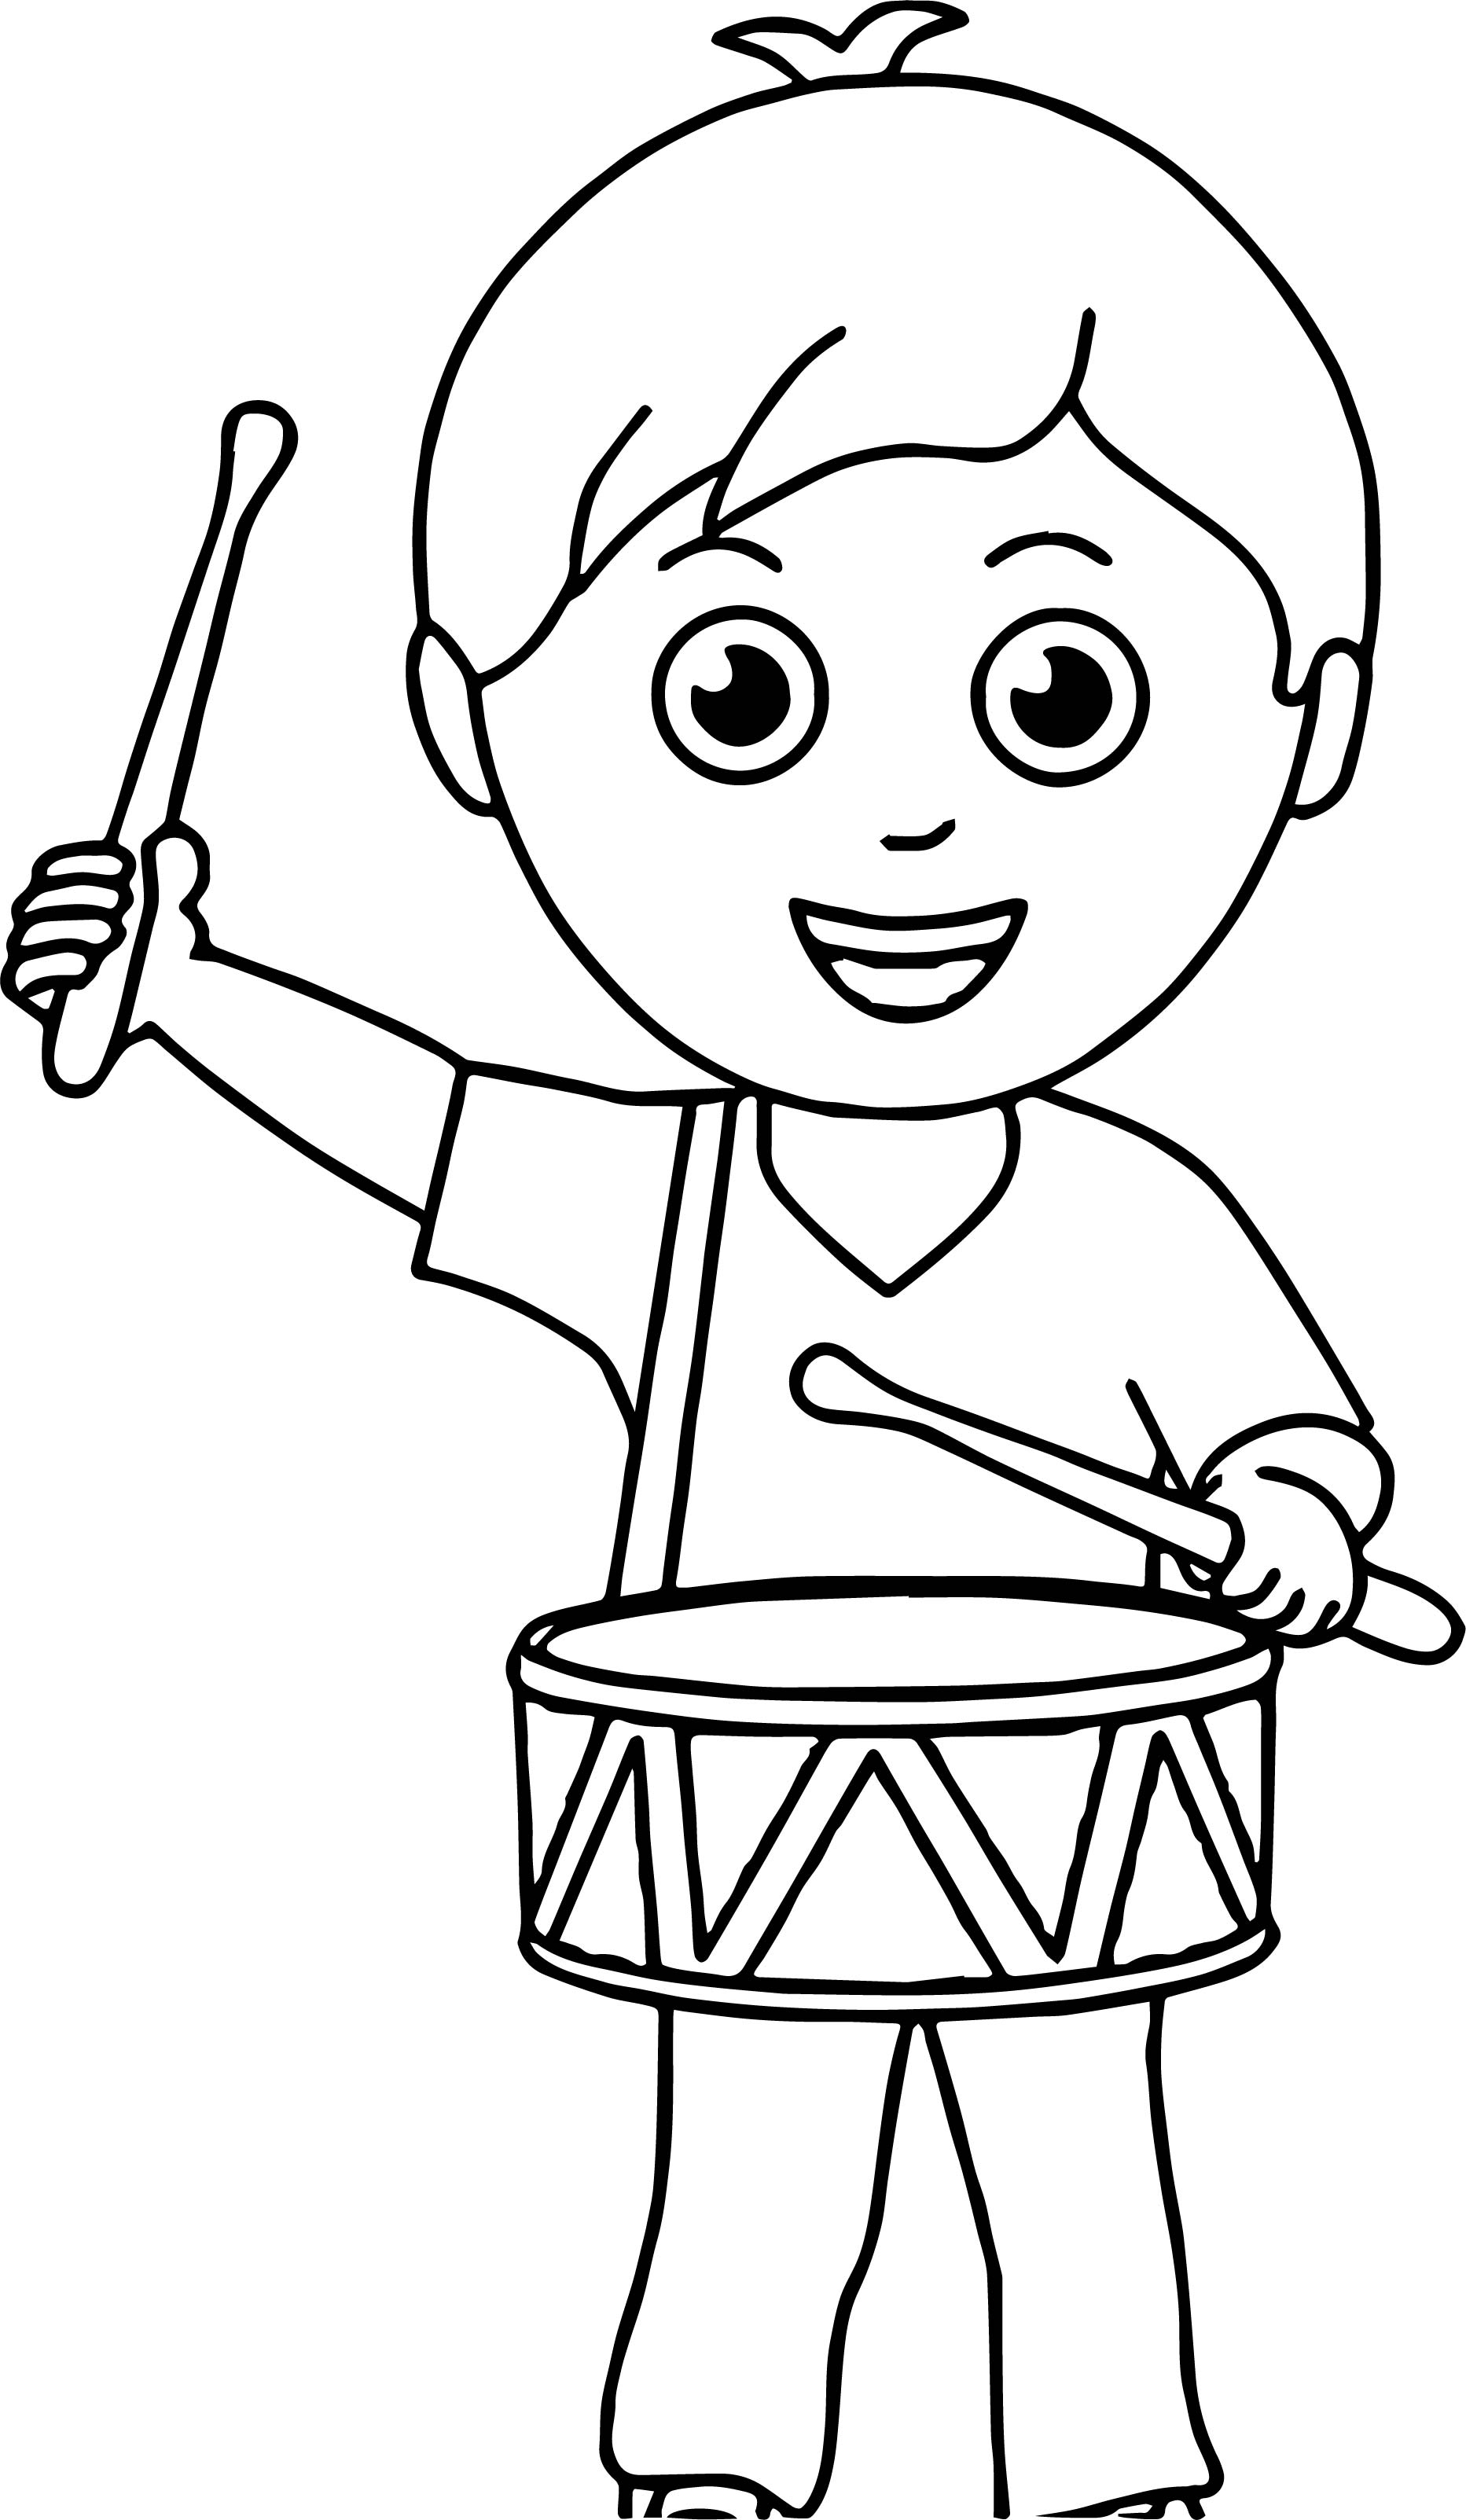 Boy Band Drum Coloring Page | Wecoloringpage.com